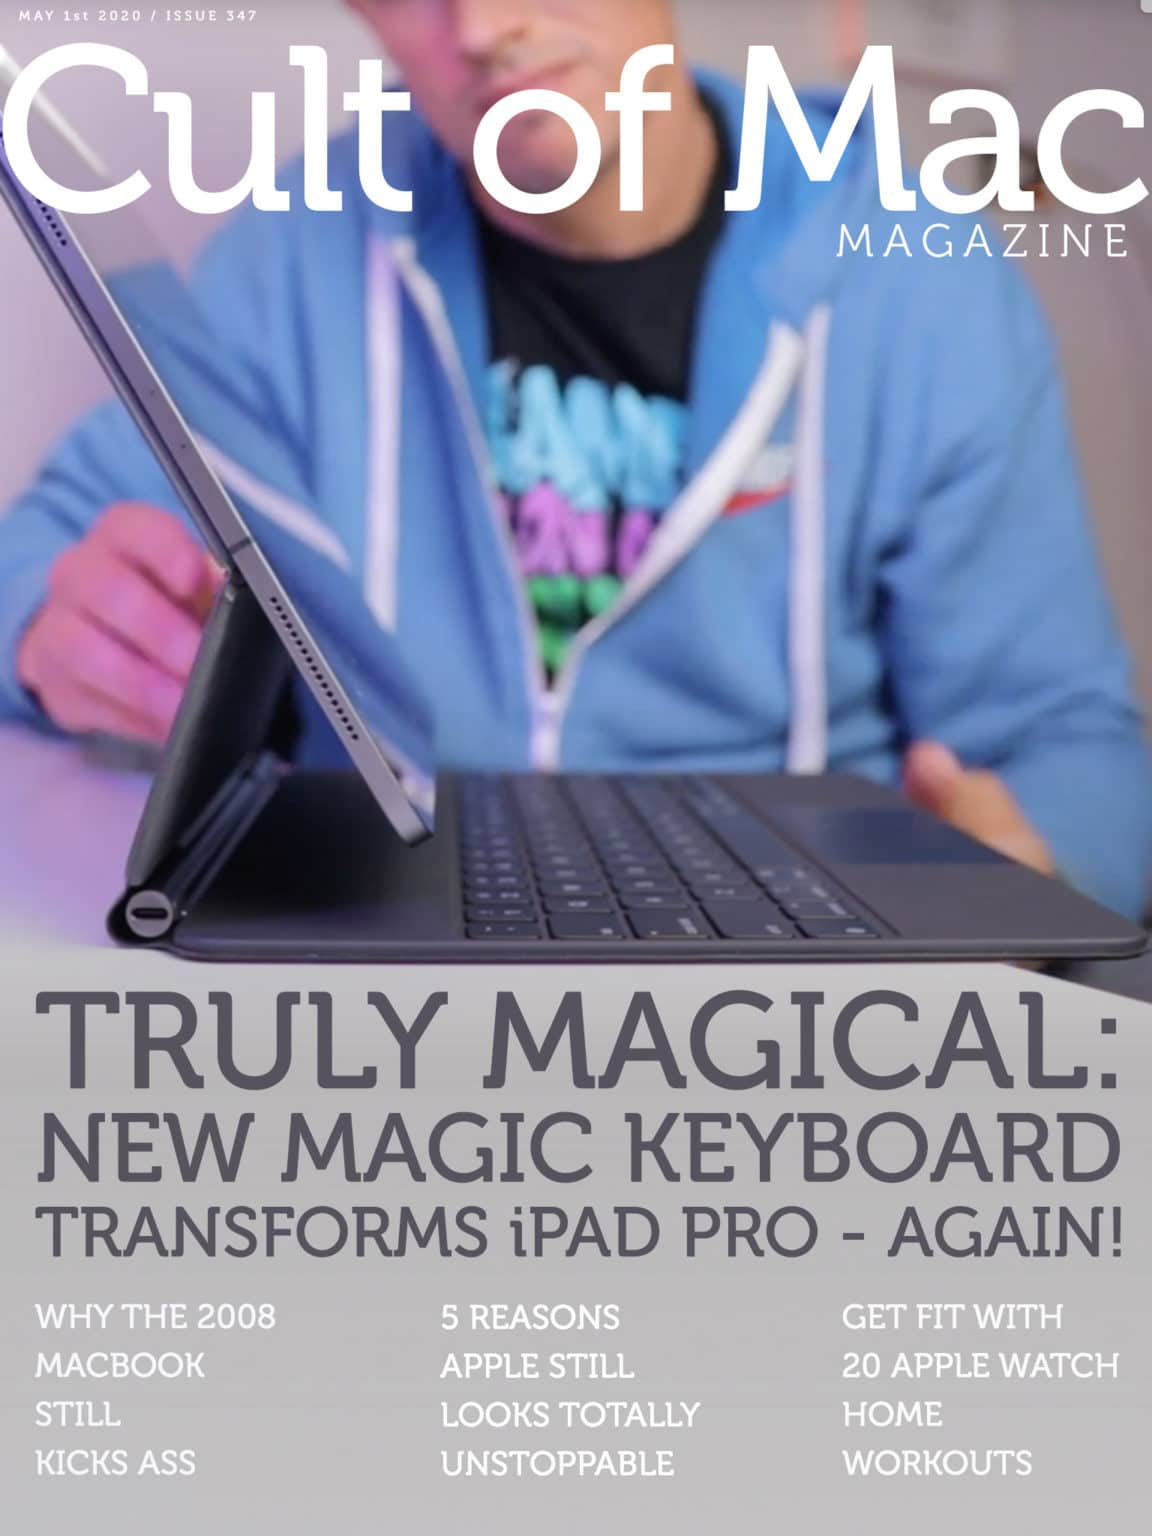 Magic Keyboard review: Truly magical iPad Pro accessory!